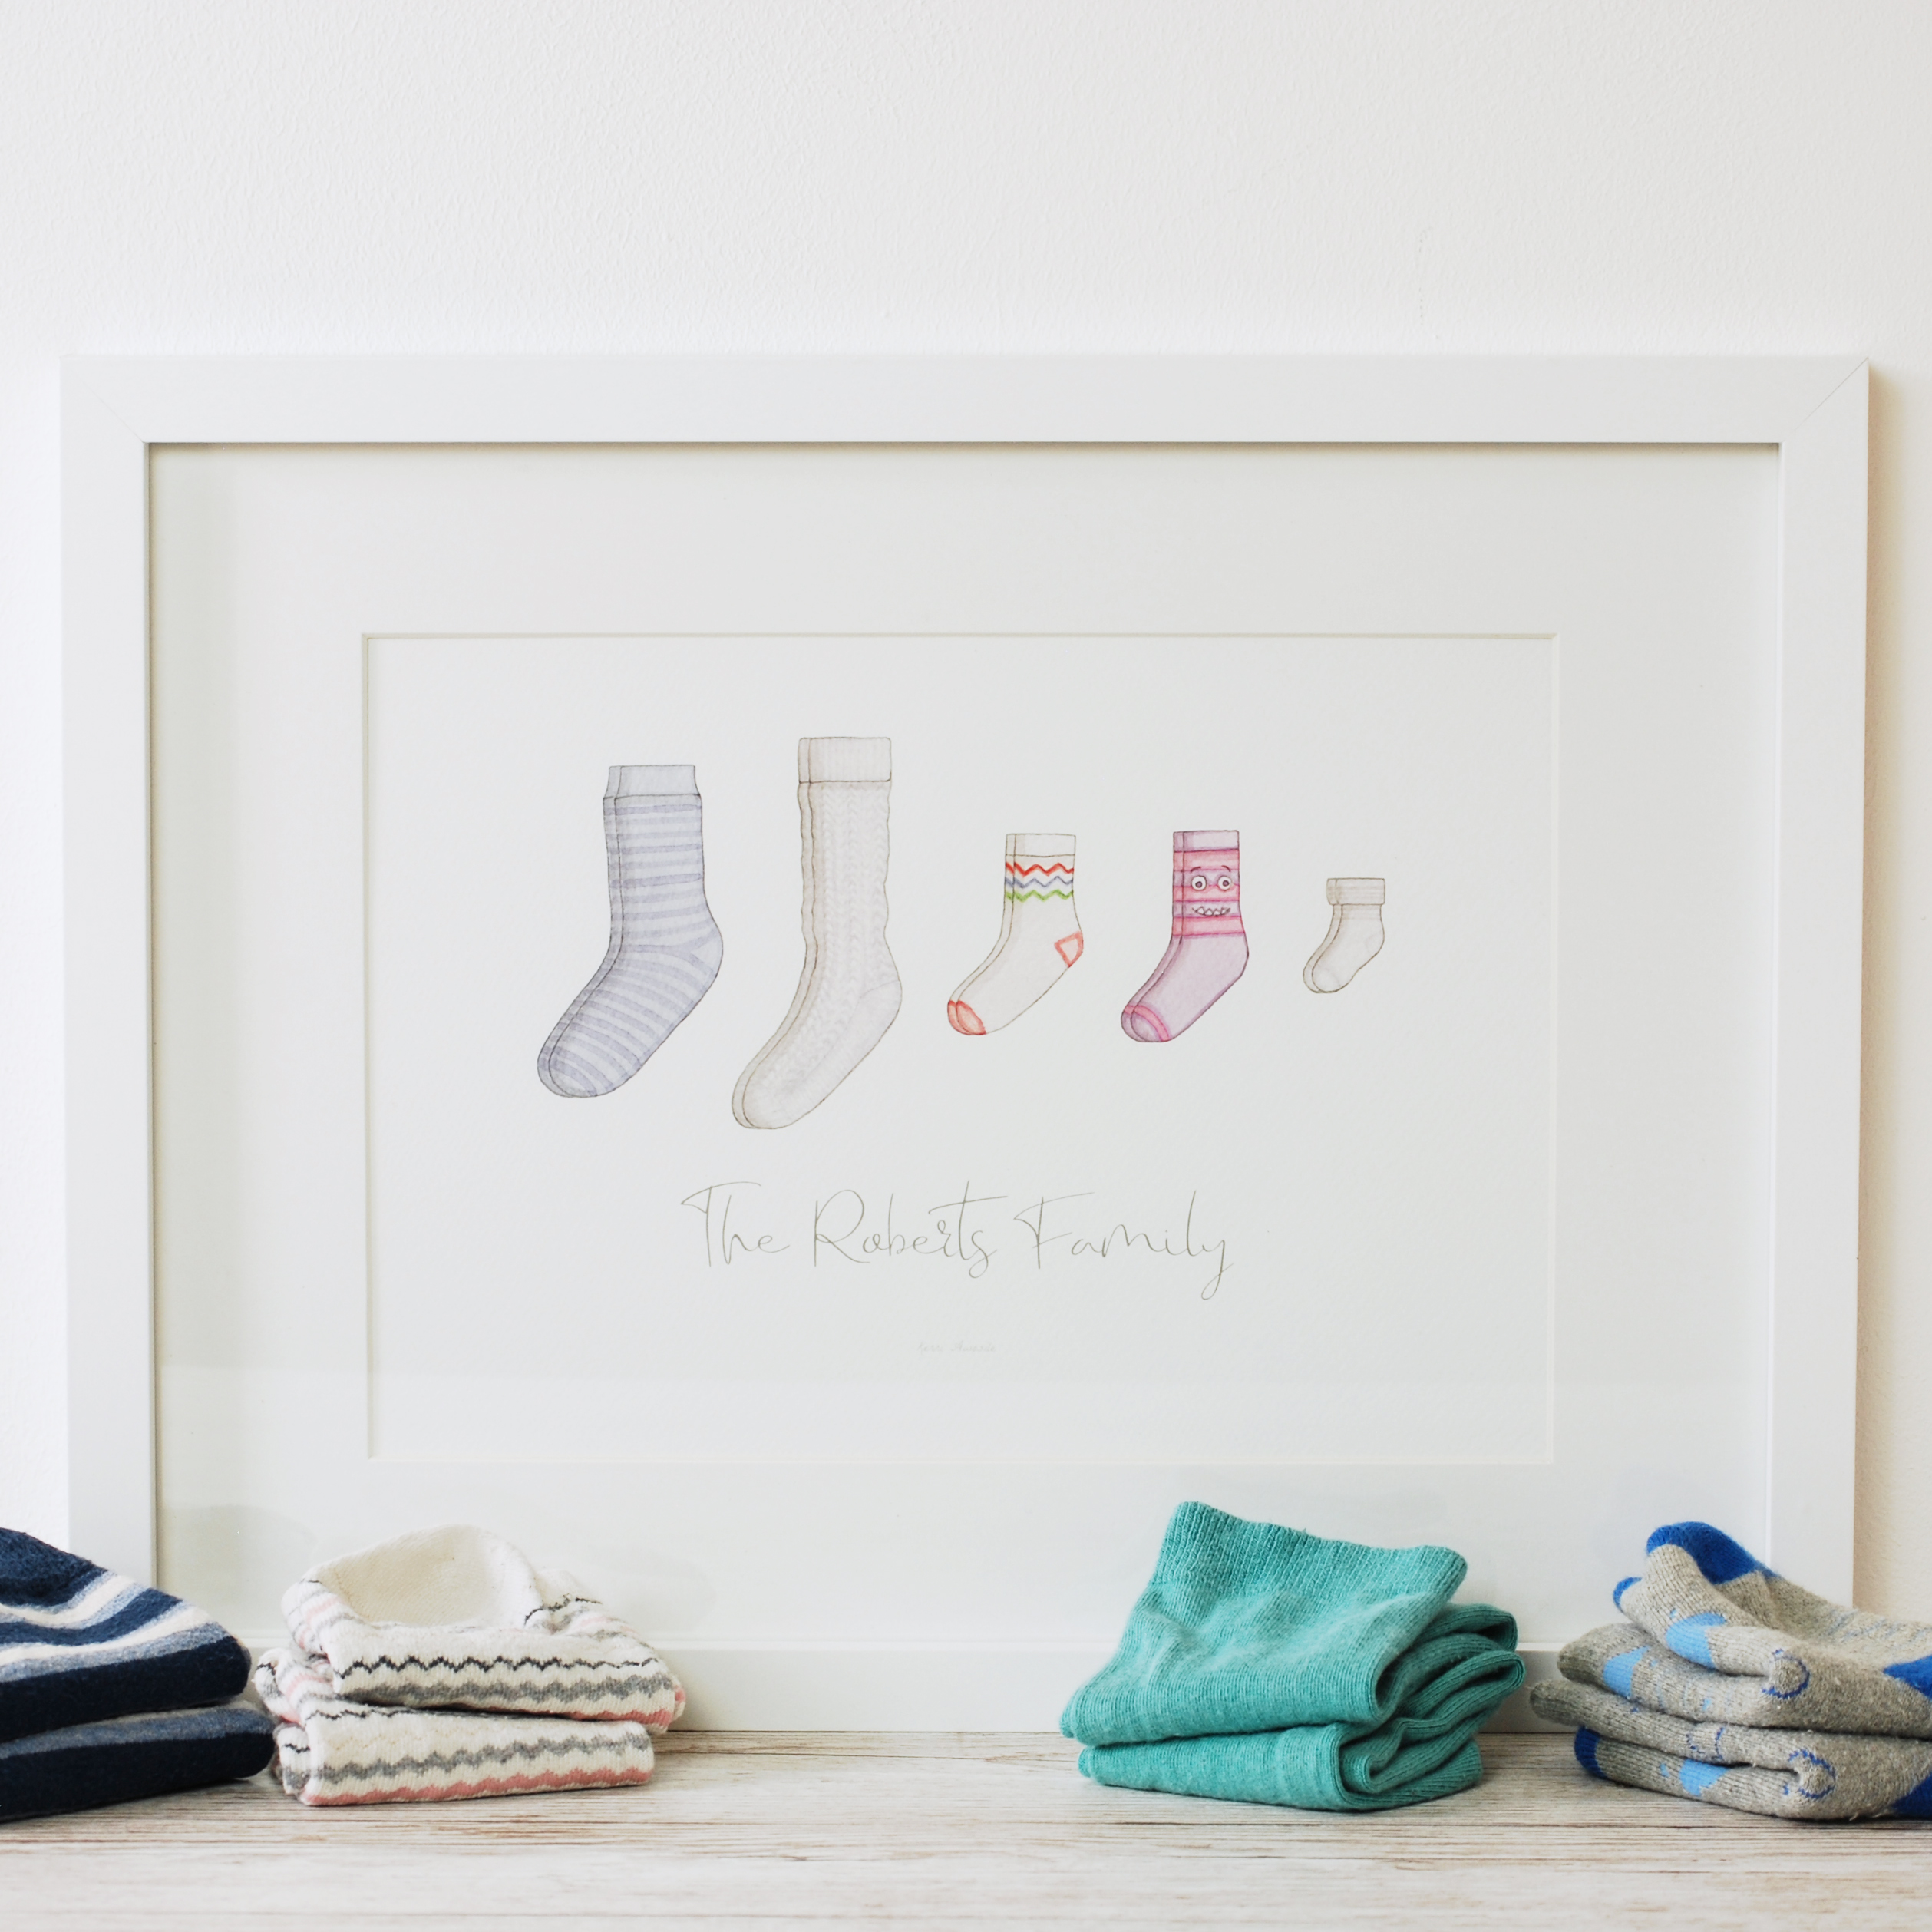 Watercolour socks family personalised art print by Kerri Awosile with socks